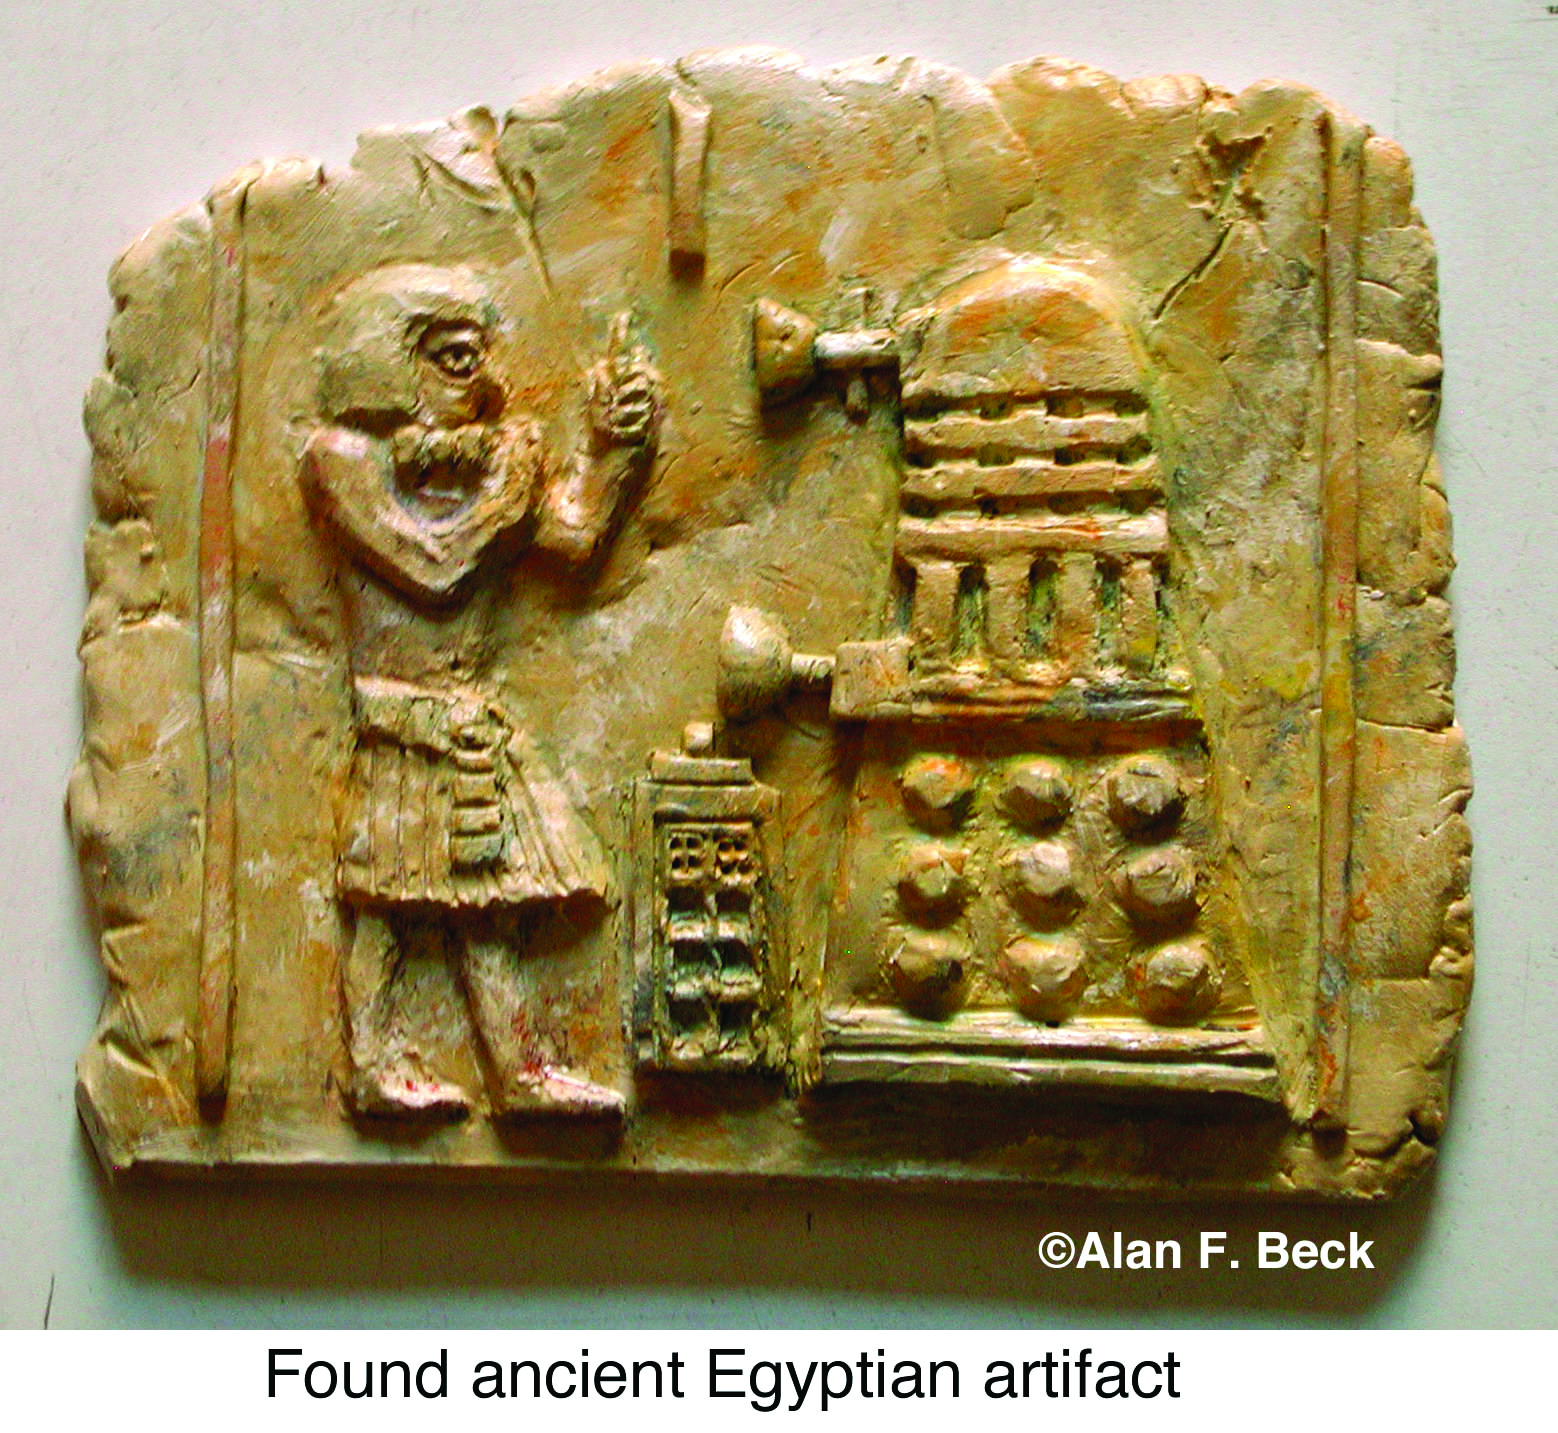 Doctor Who fanfic: Archaeological find